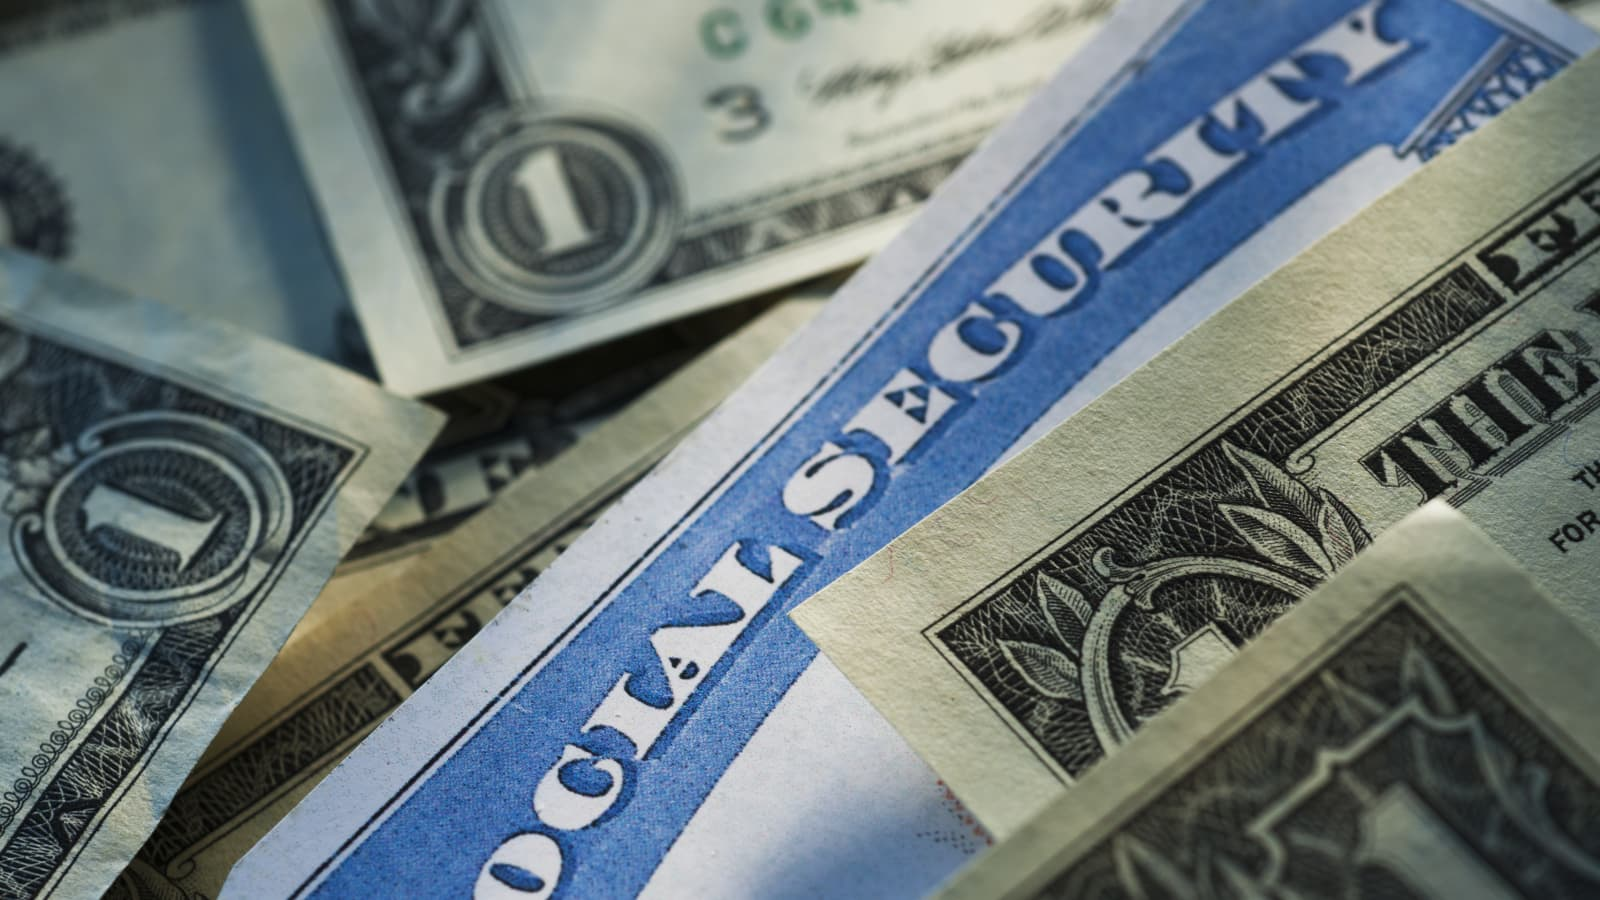 Social Security recipients may benefit from coronavirus relief checks